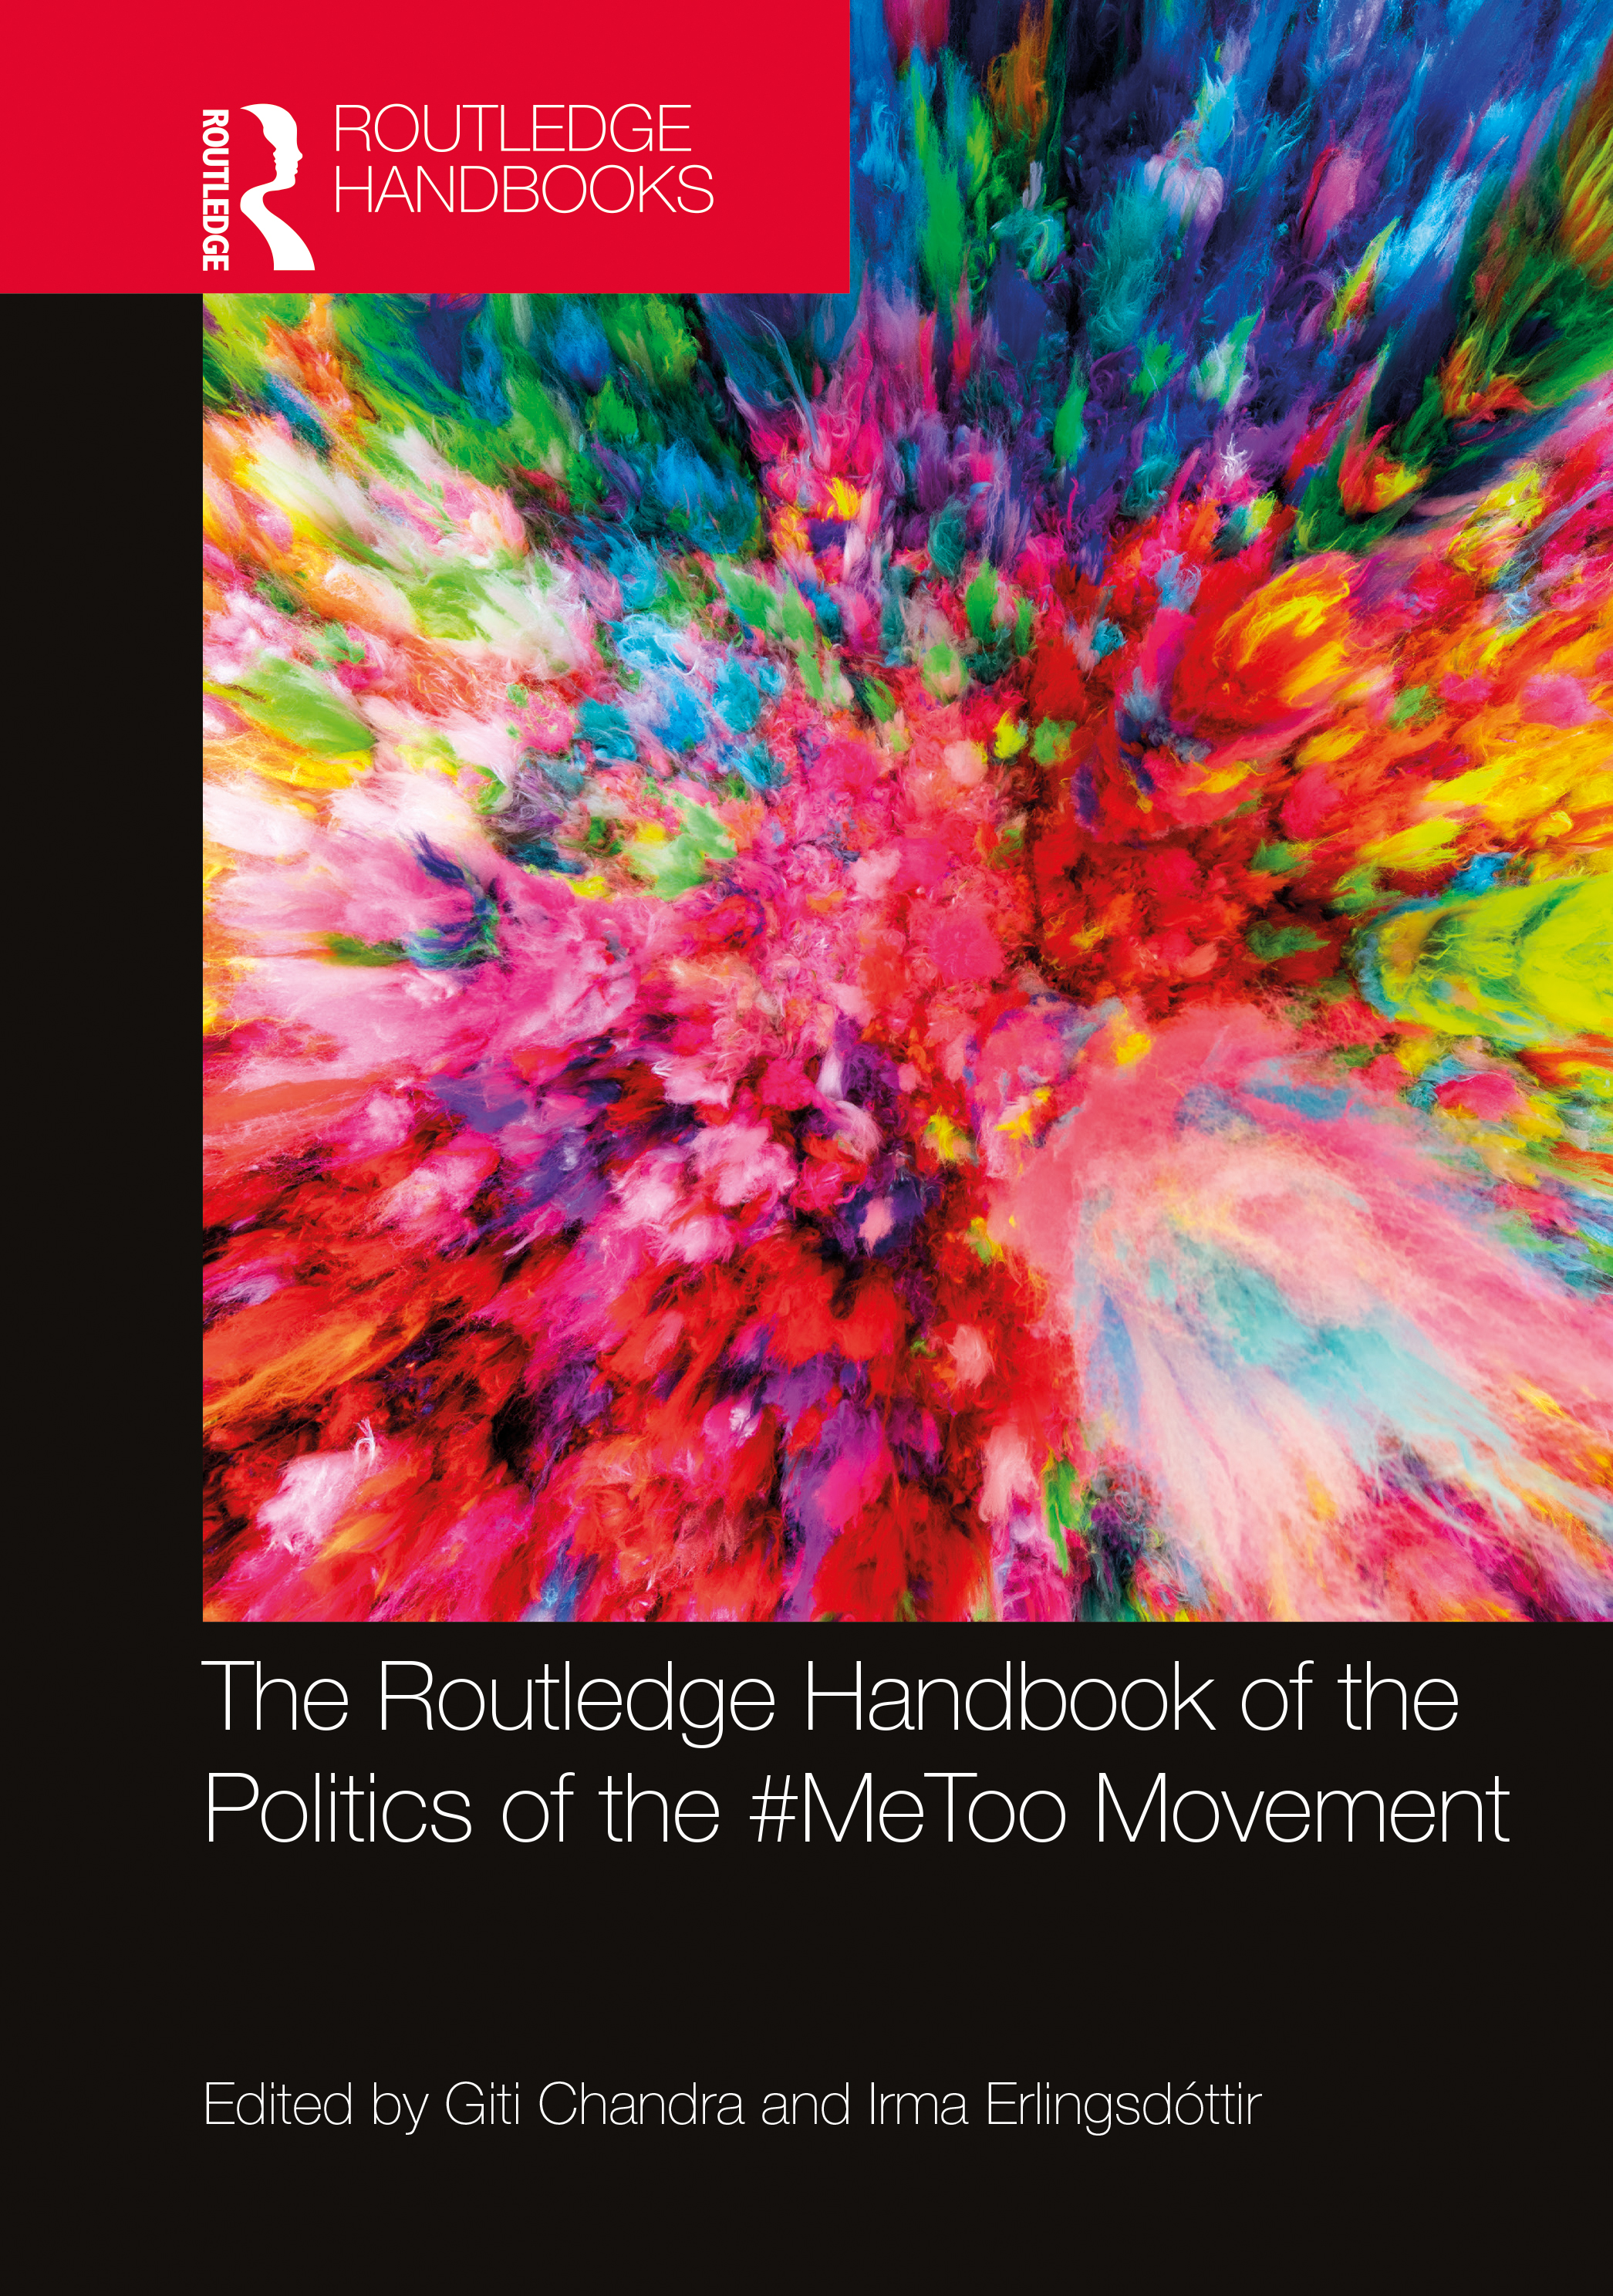 The Routledge Handbook of the Politics of the #MeToo Movement